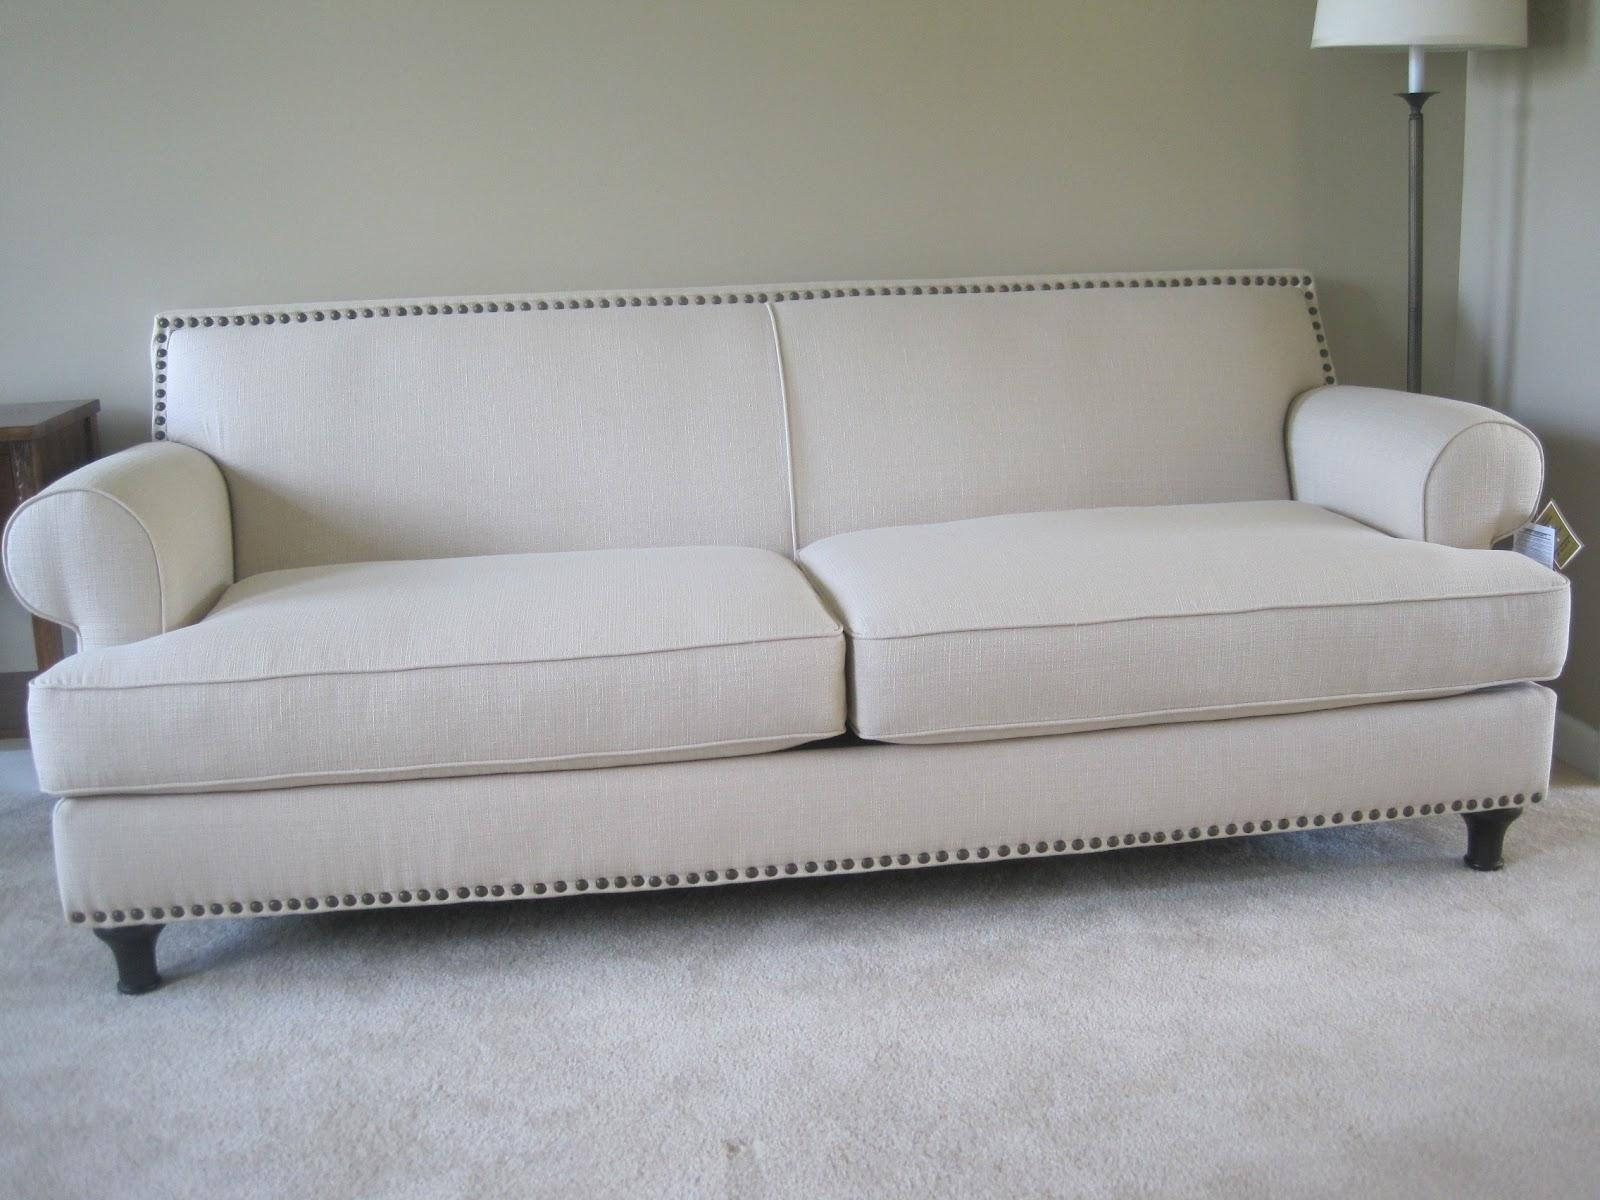 Designed To Dwell: So Fa Ortunate! With Pier 1 Sofas (Image 12 of 20)